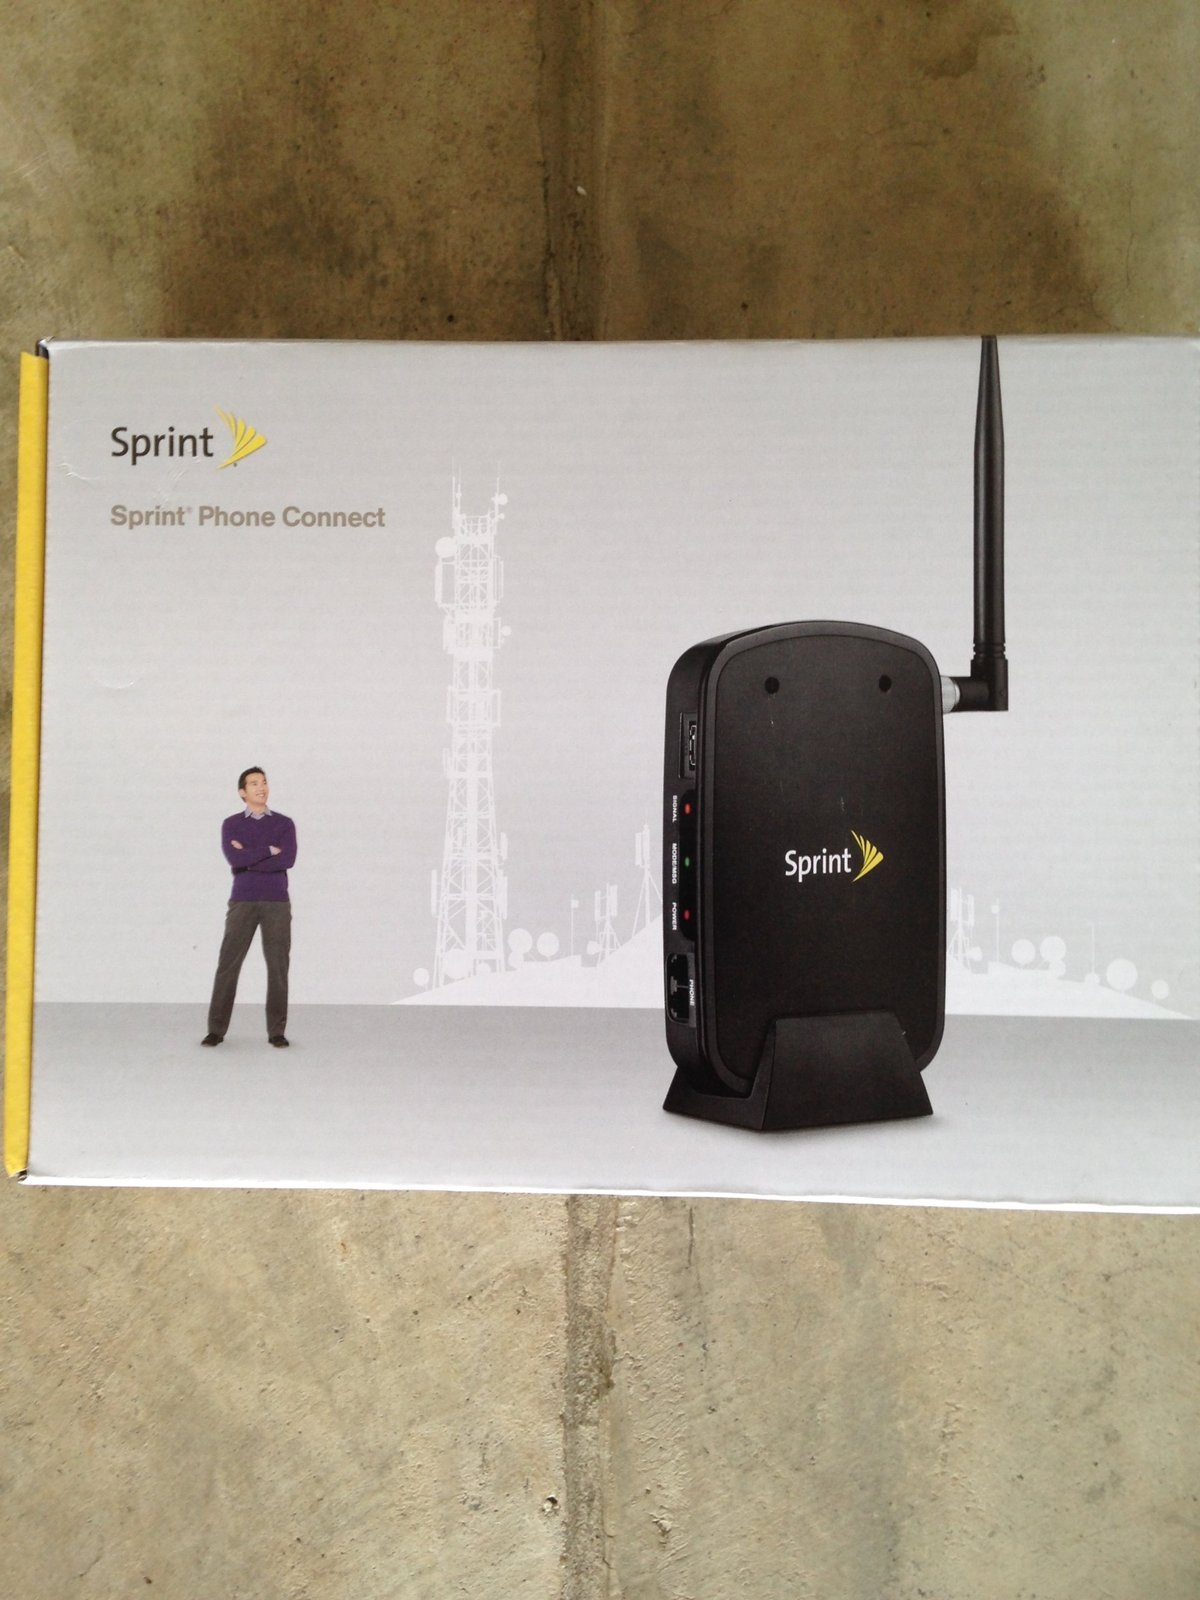 Sprint Phone Connect